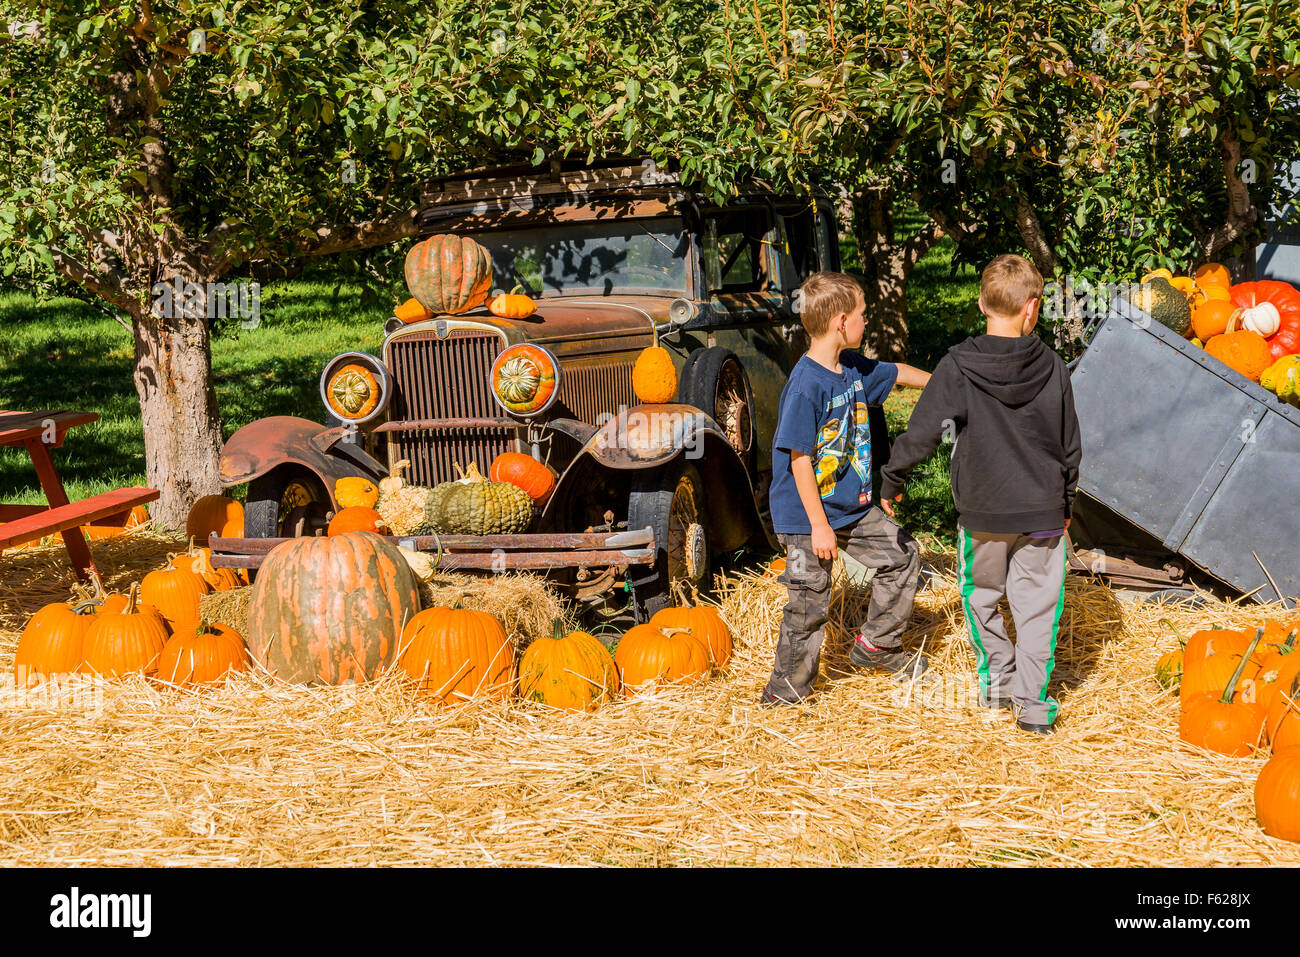 Boys check out old car and Fruit stand pumpkins, Keremeos, British Columbia, Canada - Stock Image